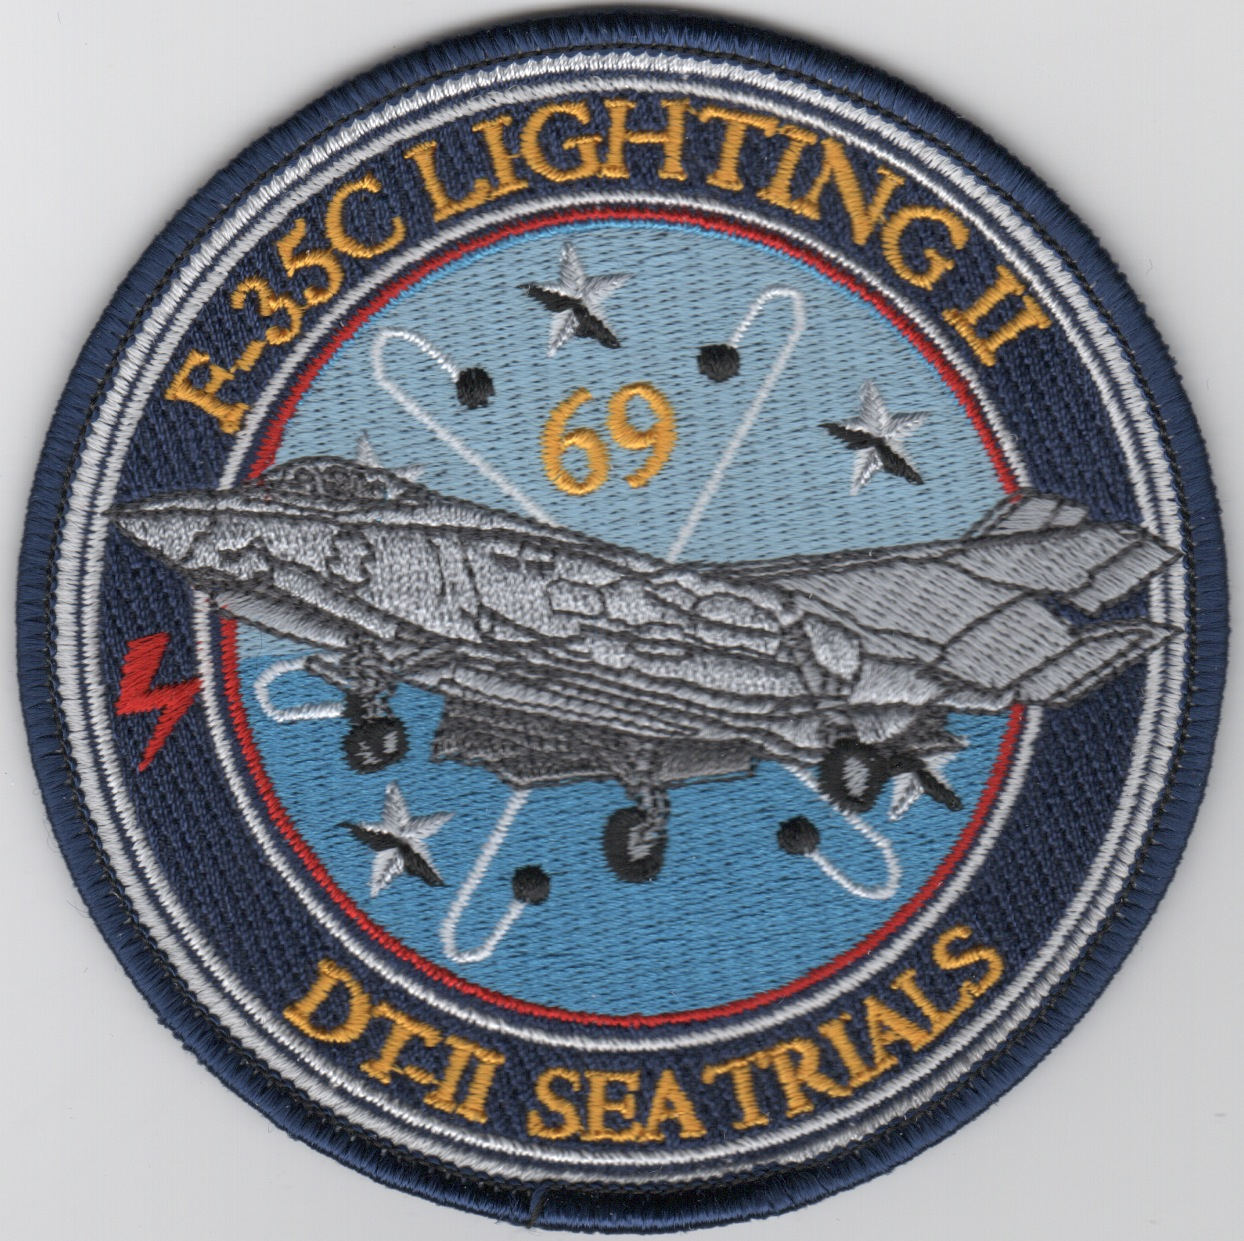 F-35/CVN-69 'Sea Trials' Patch